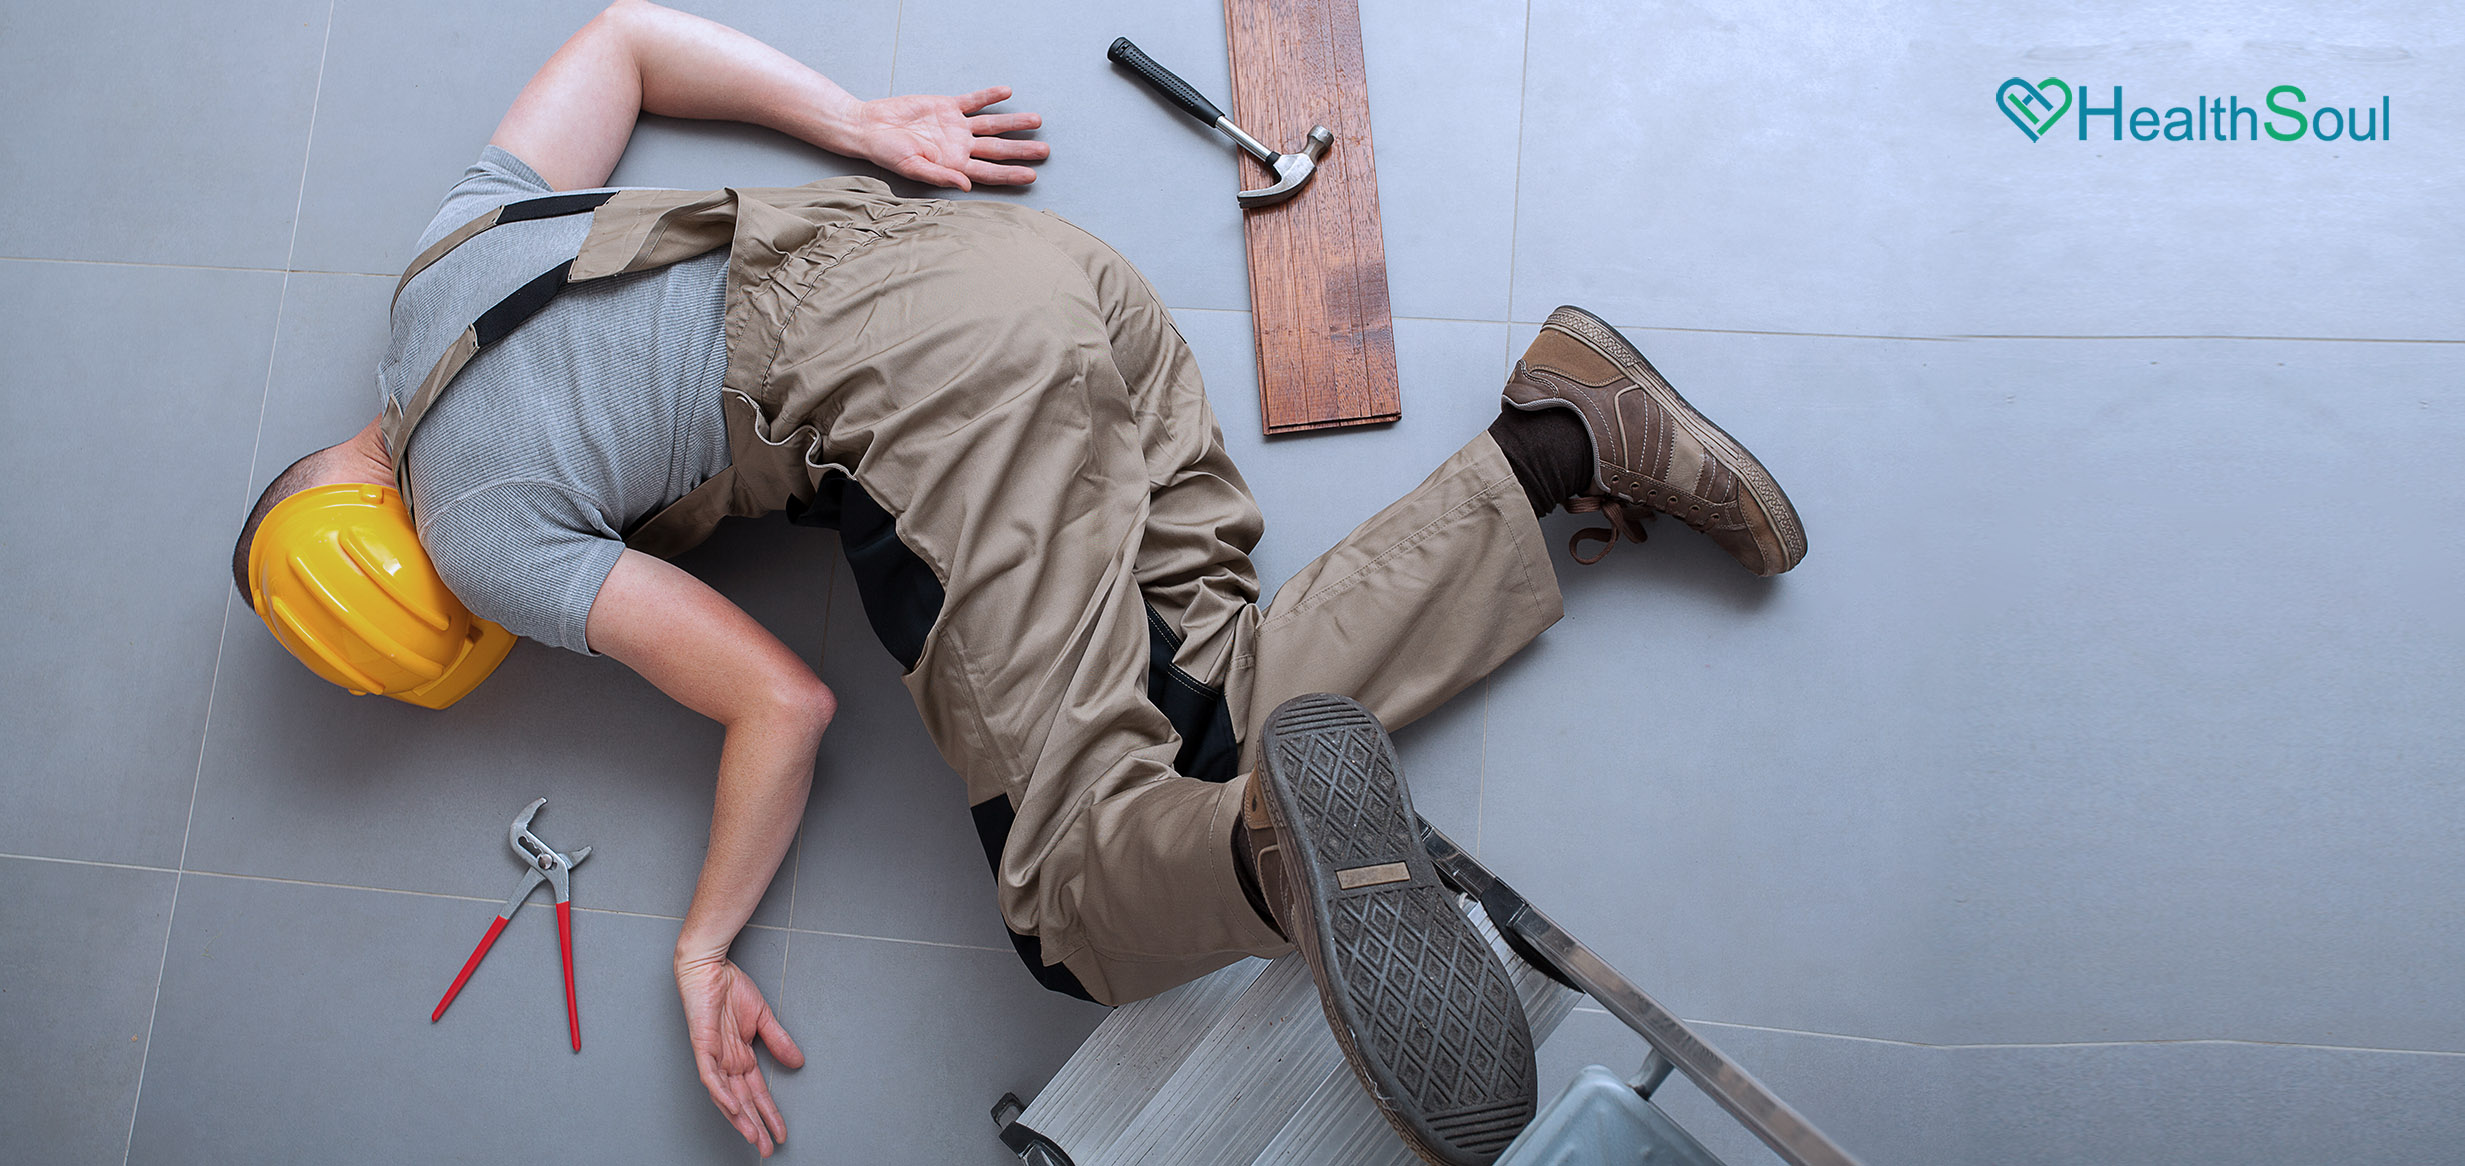 How to protect your legal rights after being injured at work | HealthSoul